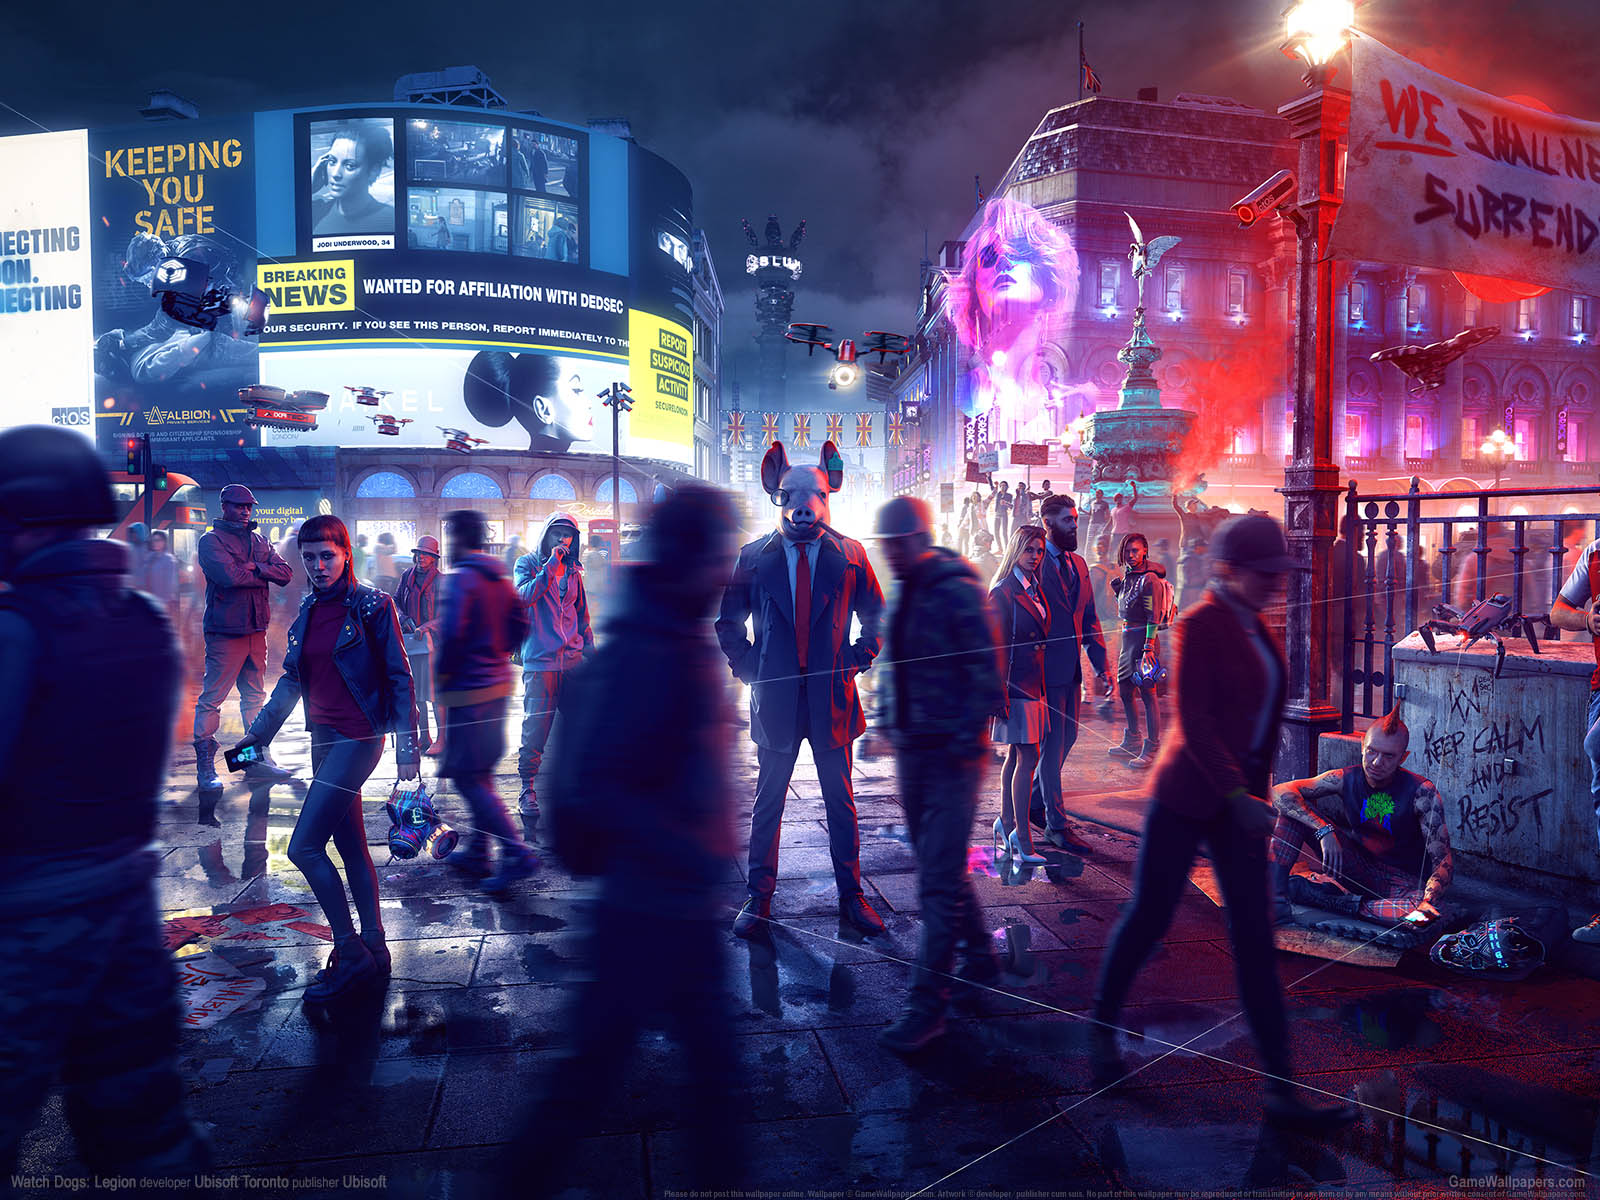 Watch Dogs: Legionνmmer=01 Hintergrundbild  1600x1200